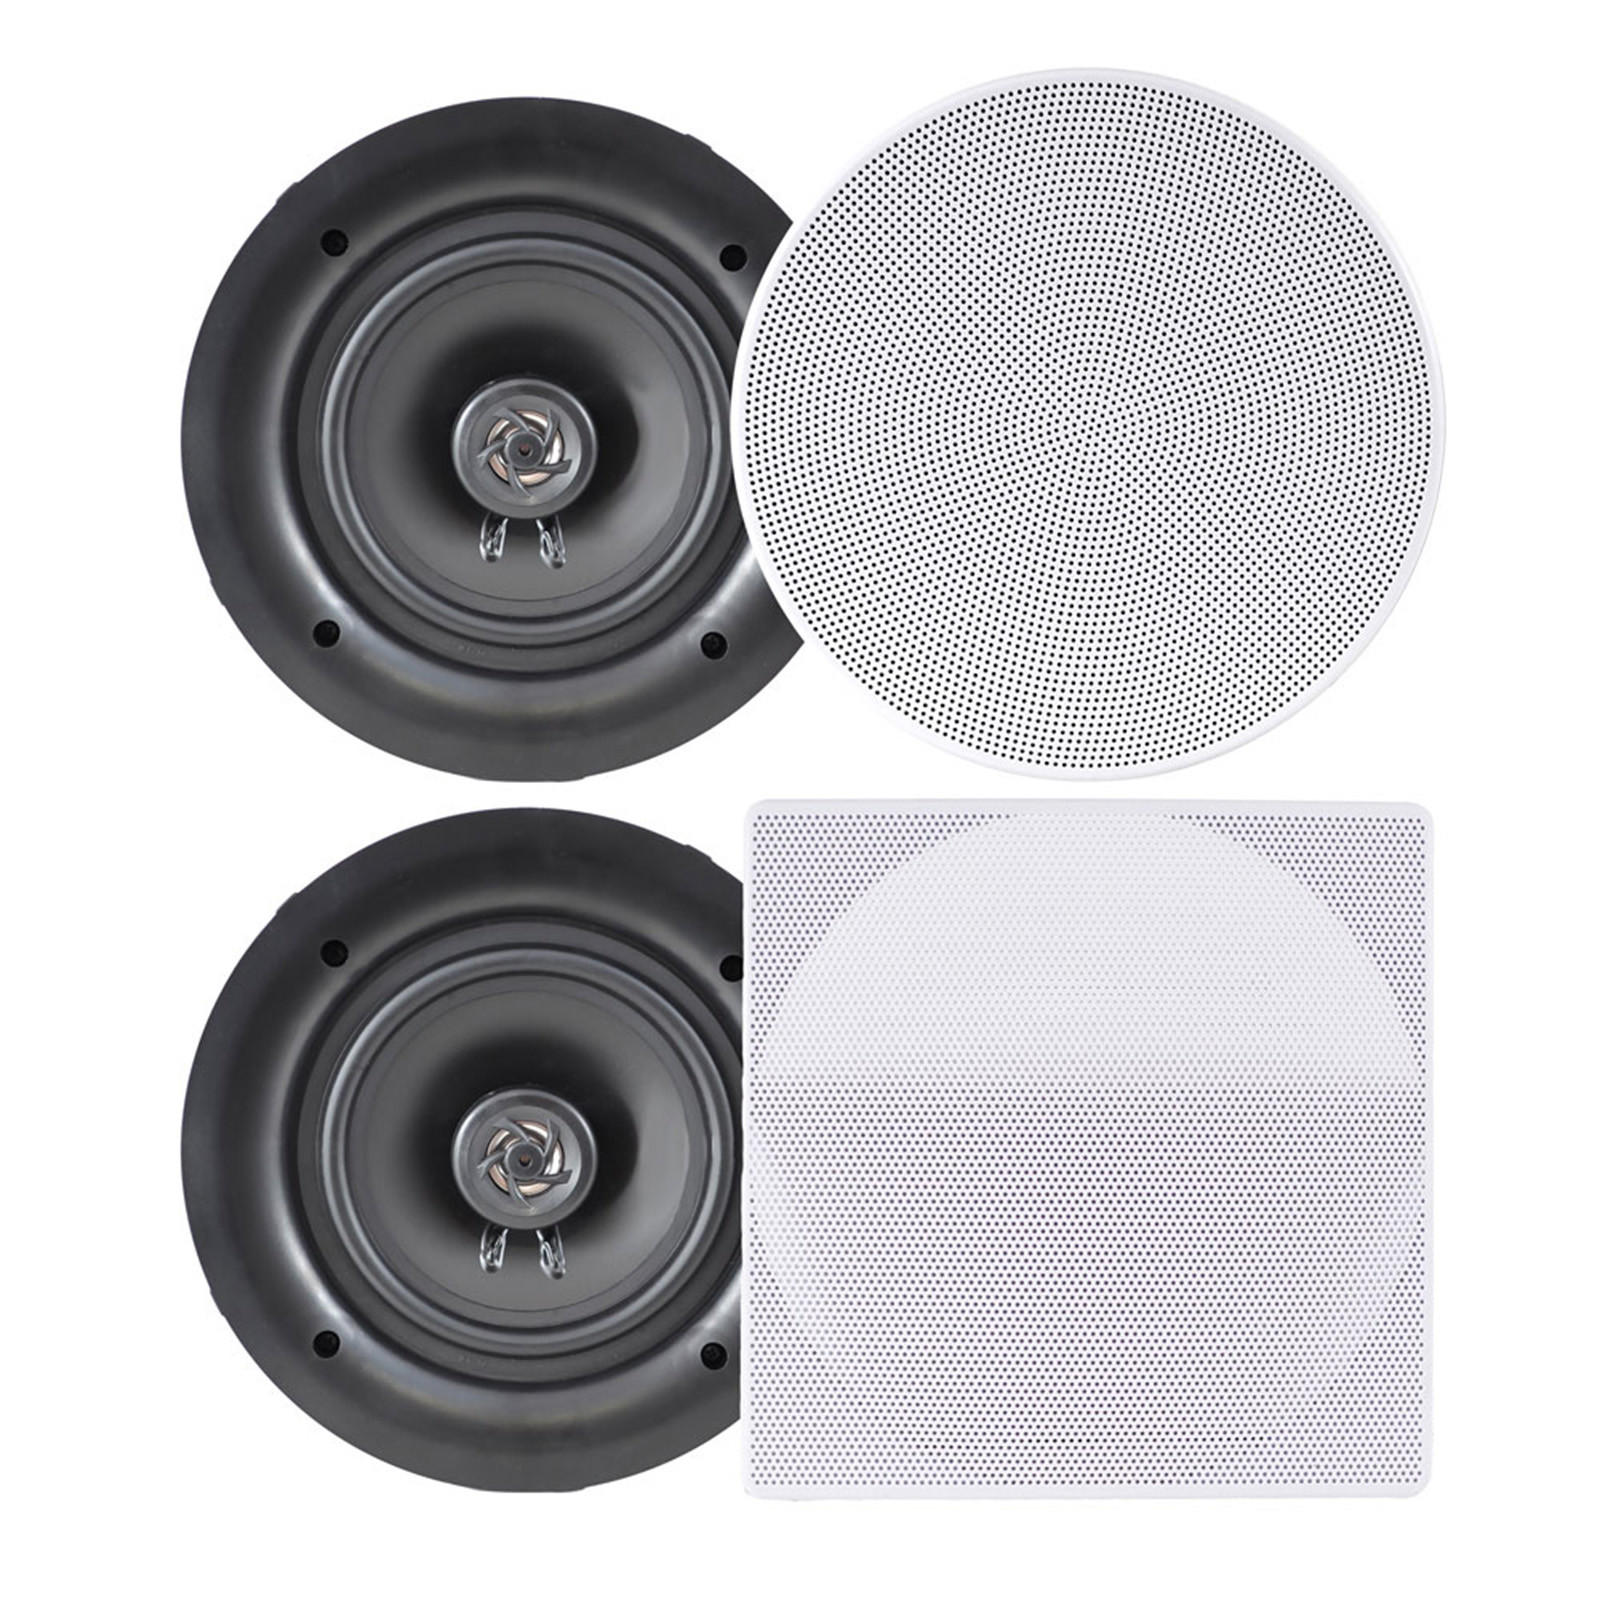 "Pyle 6.5"" In-Wall / In-Ceiling Dual Stereo Speakers, 200 Watt, 2-Way, Flush Mount, White"